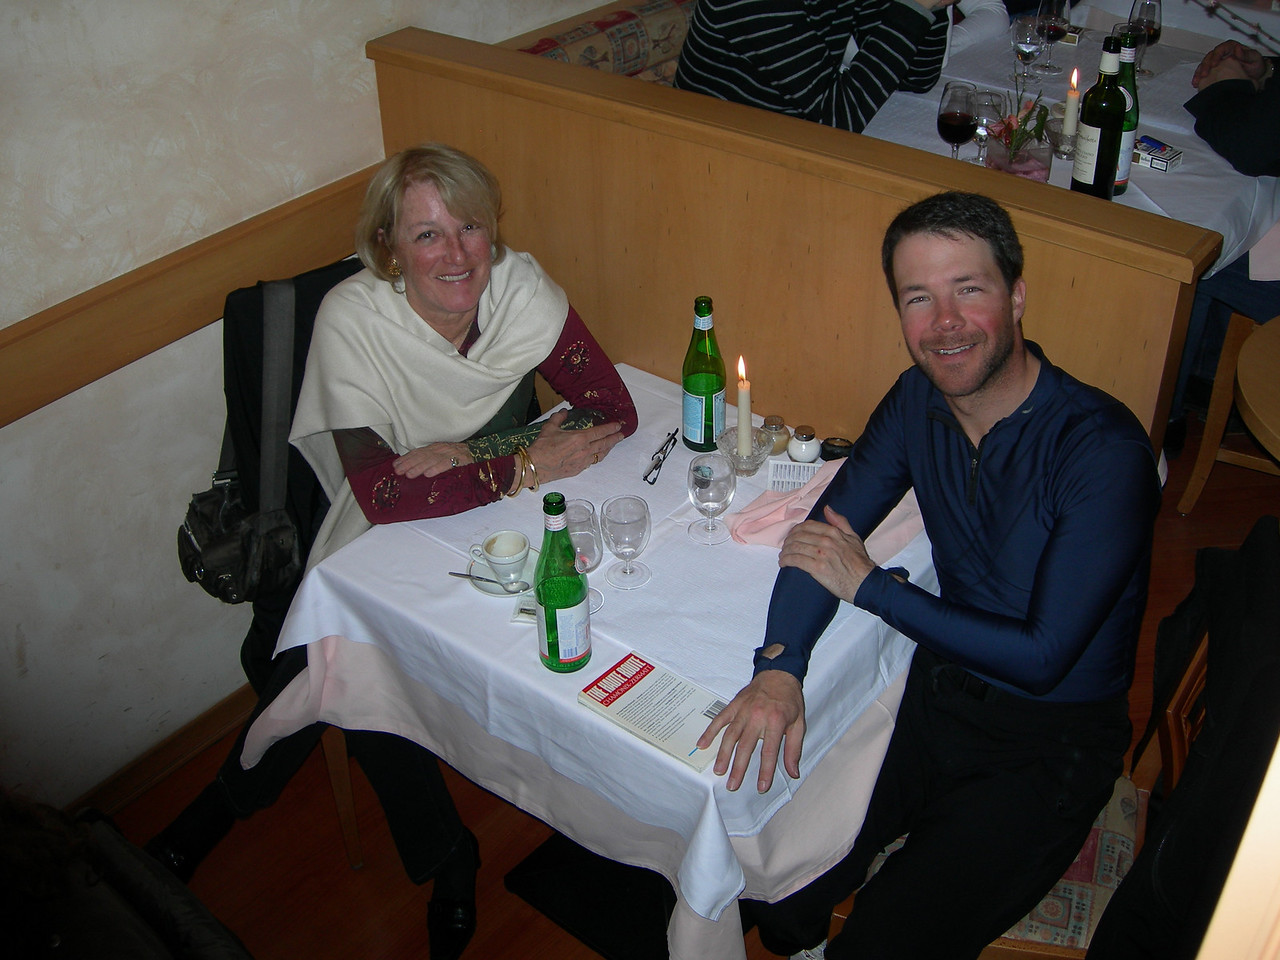 My aunt (Ariane Sulzer), my Dad's sister and I at a restaurant in Lausanne, home of the Olympic Museum and International Olympic Committee (IOC).  My aunt was raised outside of Boston, but has lived and raised her son (my cousin) in Lausanne, Switzerland.